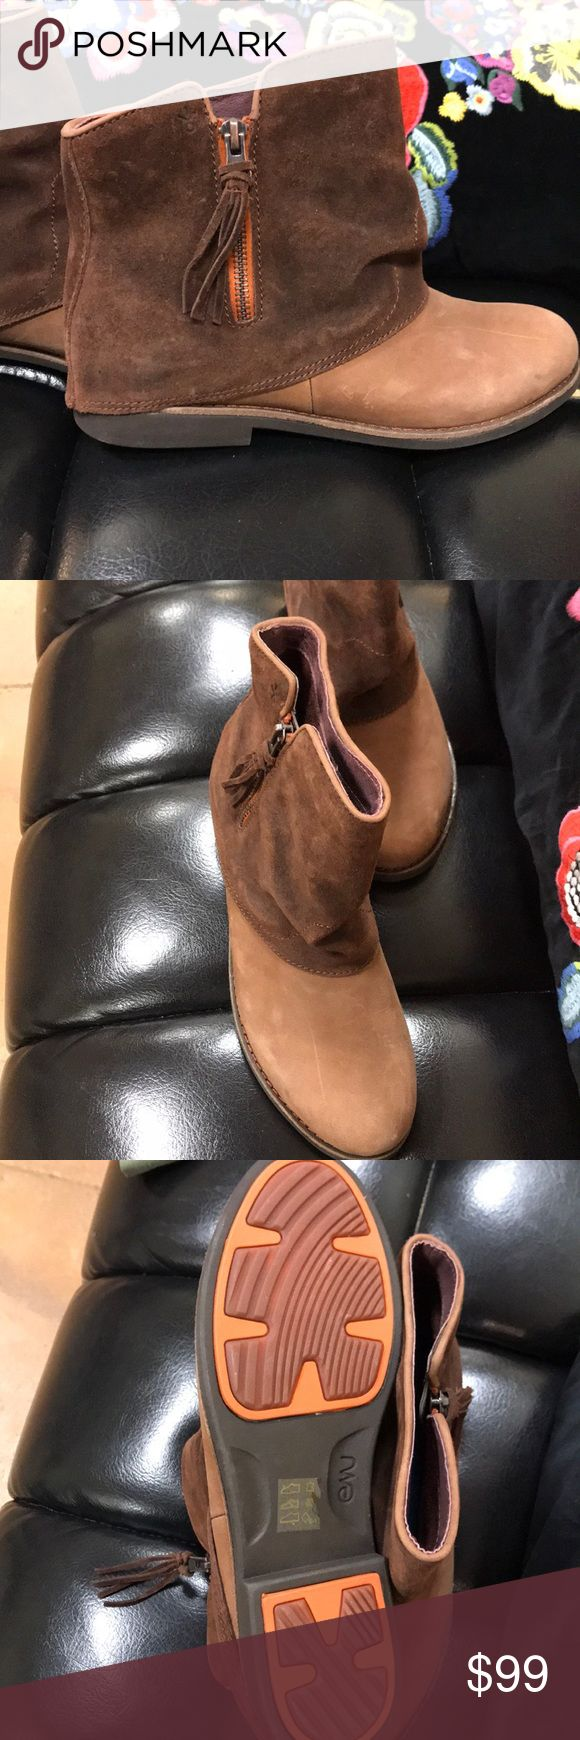 Emu boots Emu Australia zip ankle boots —never worn NO tAGs Emu Shoes Ankle Boots & Booties